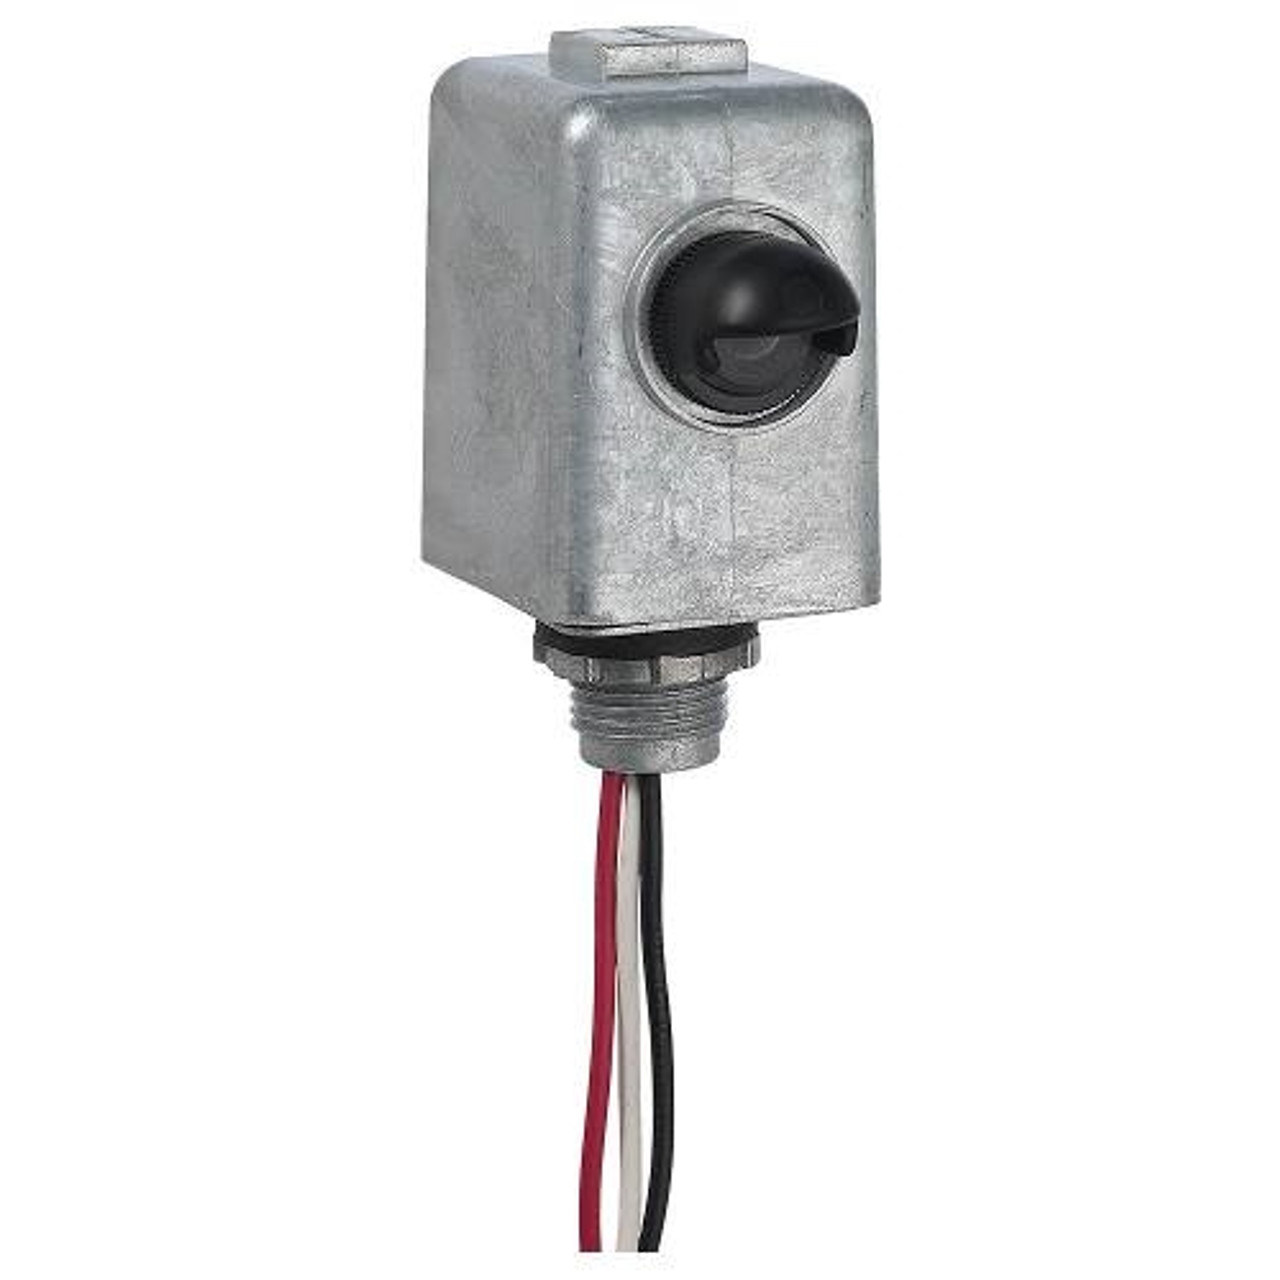 How To Install Photocell Outdoor Light Sensor Need A Manual Guide